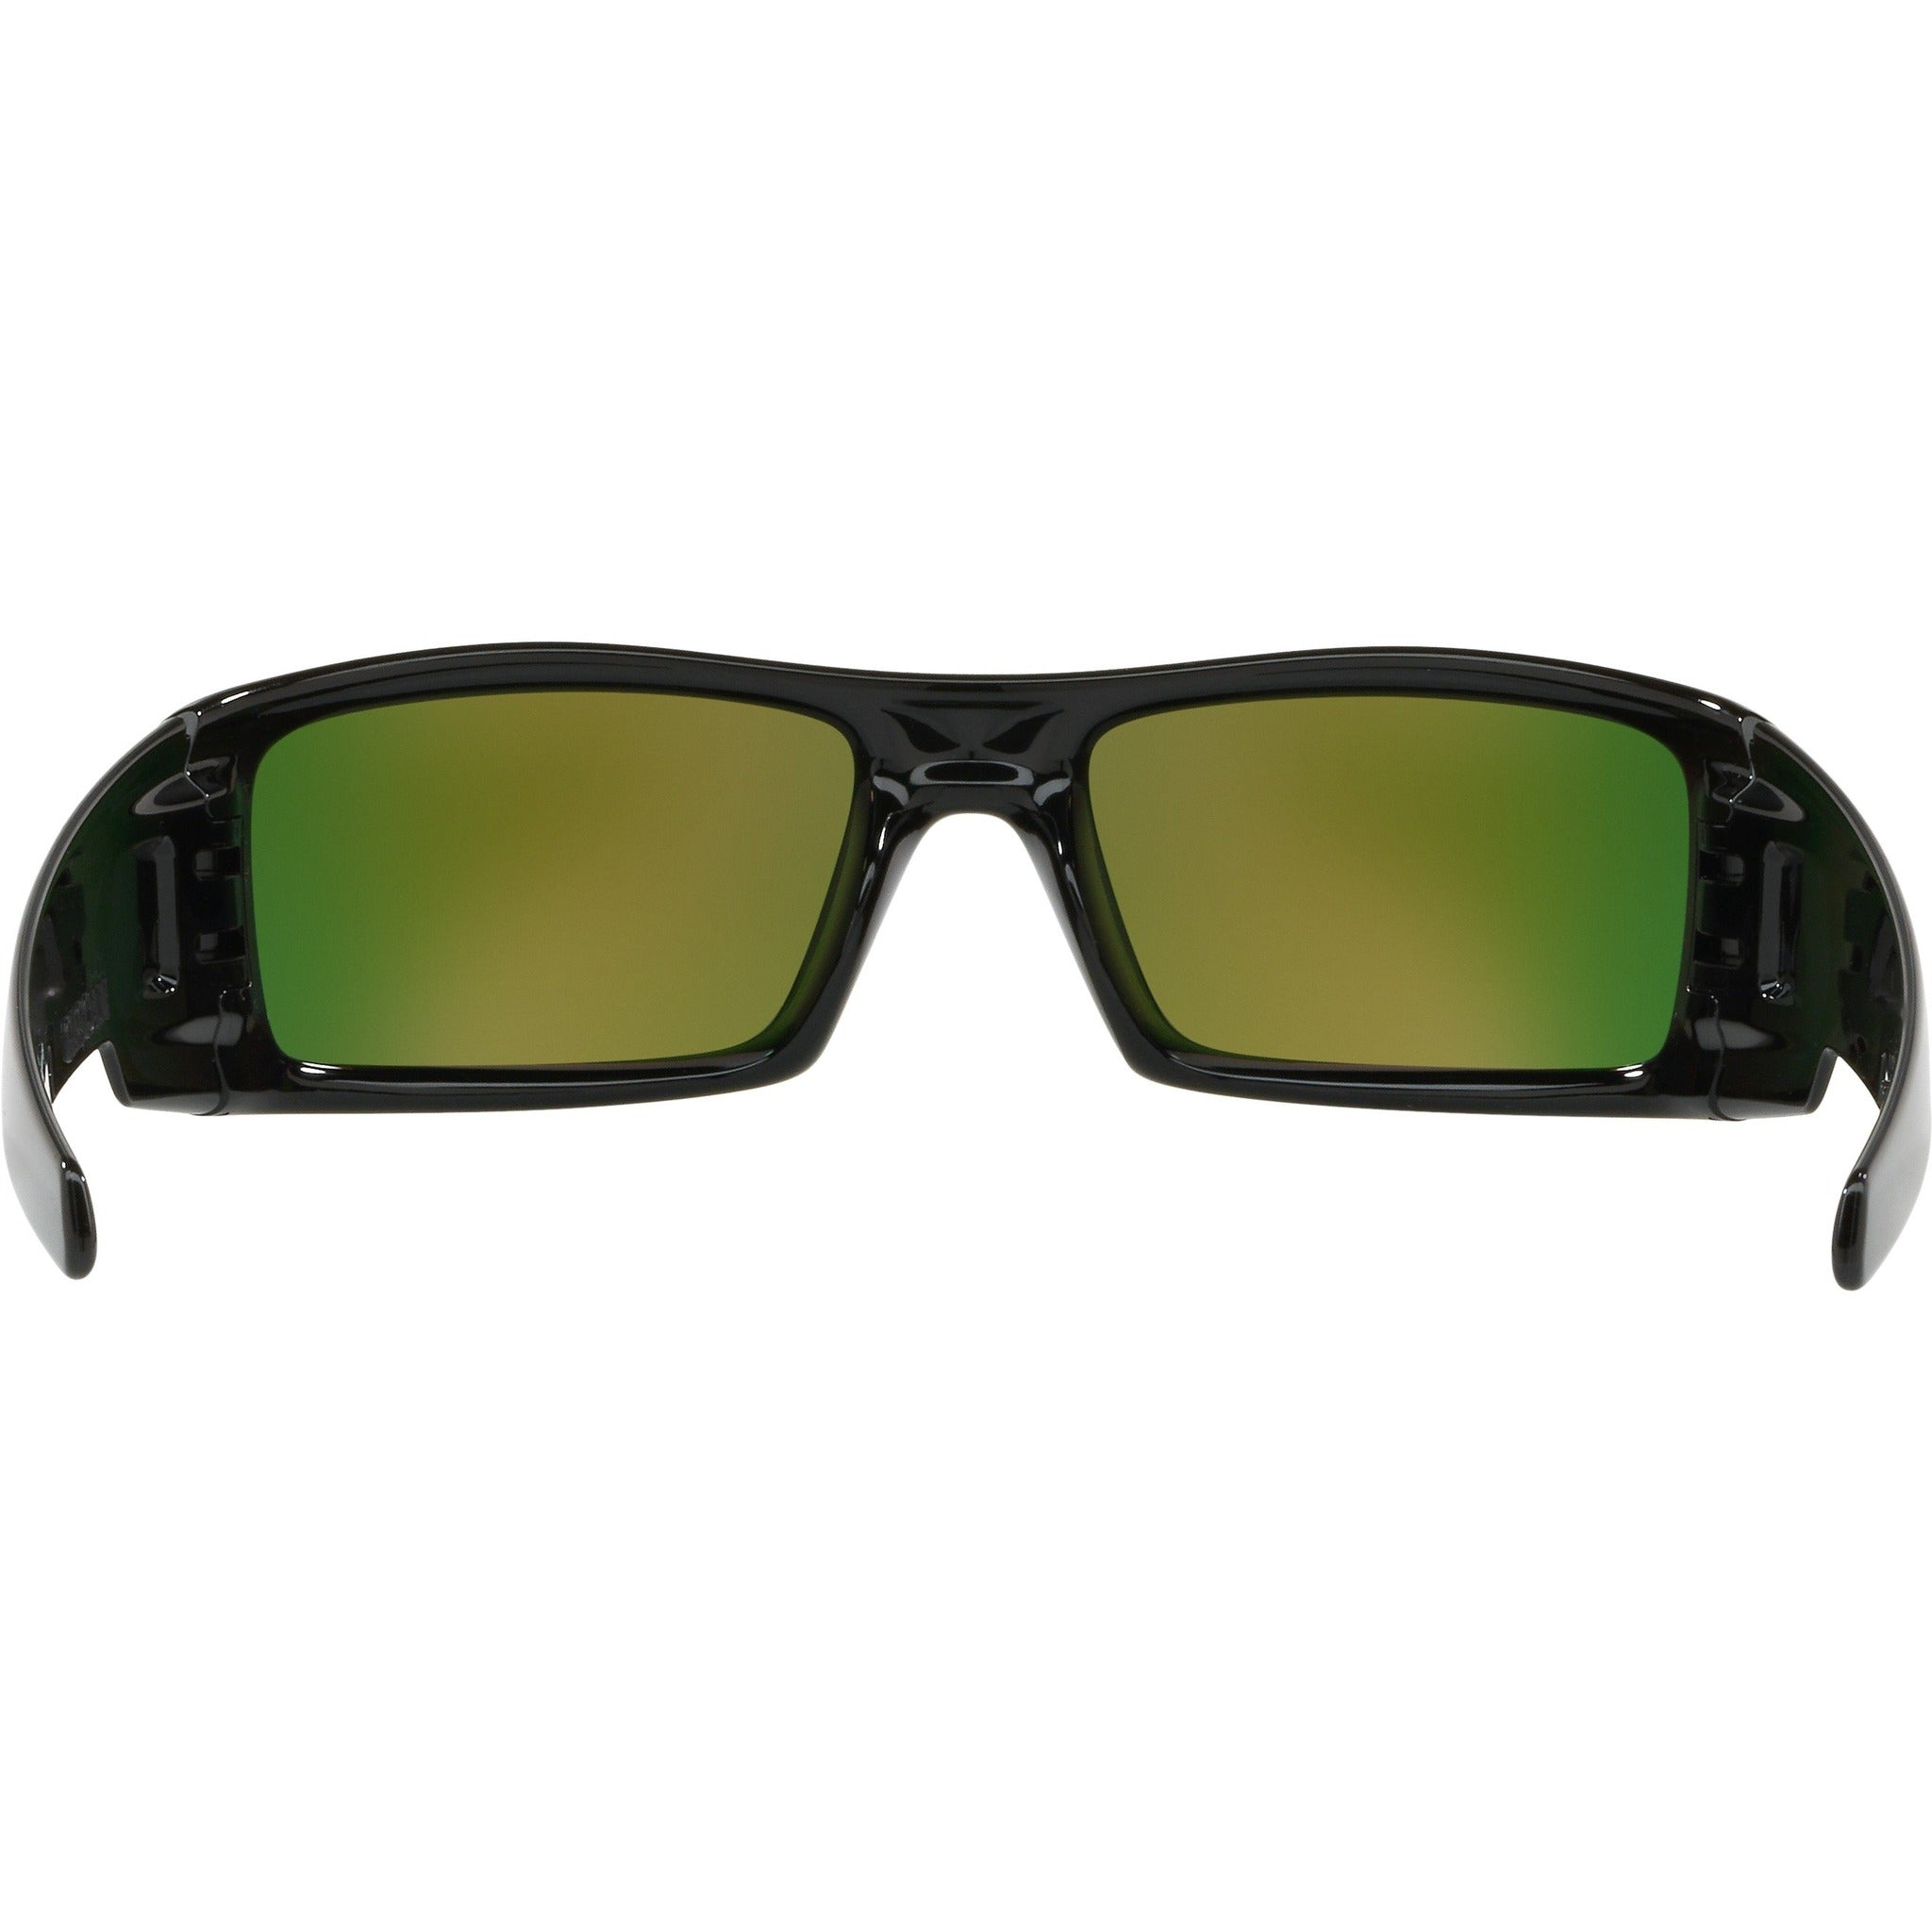 Oakley Black Gascan Sunglasses - 88 Gear